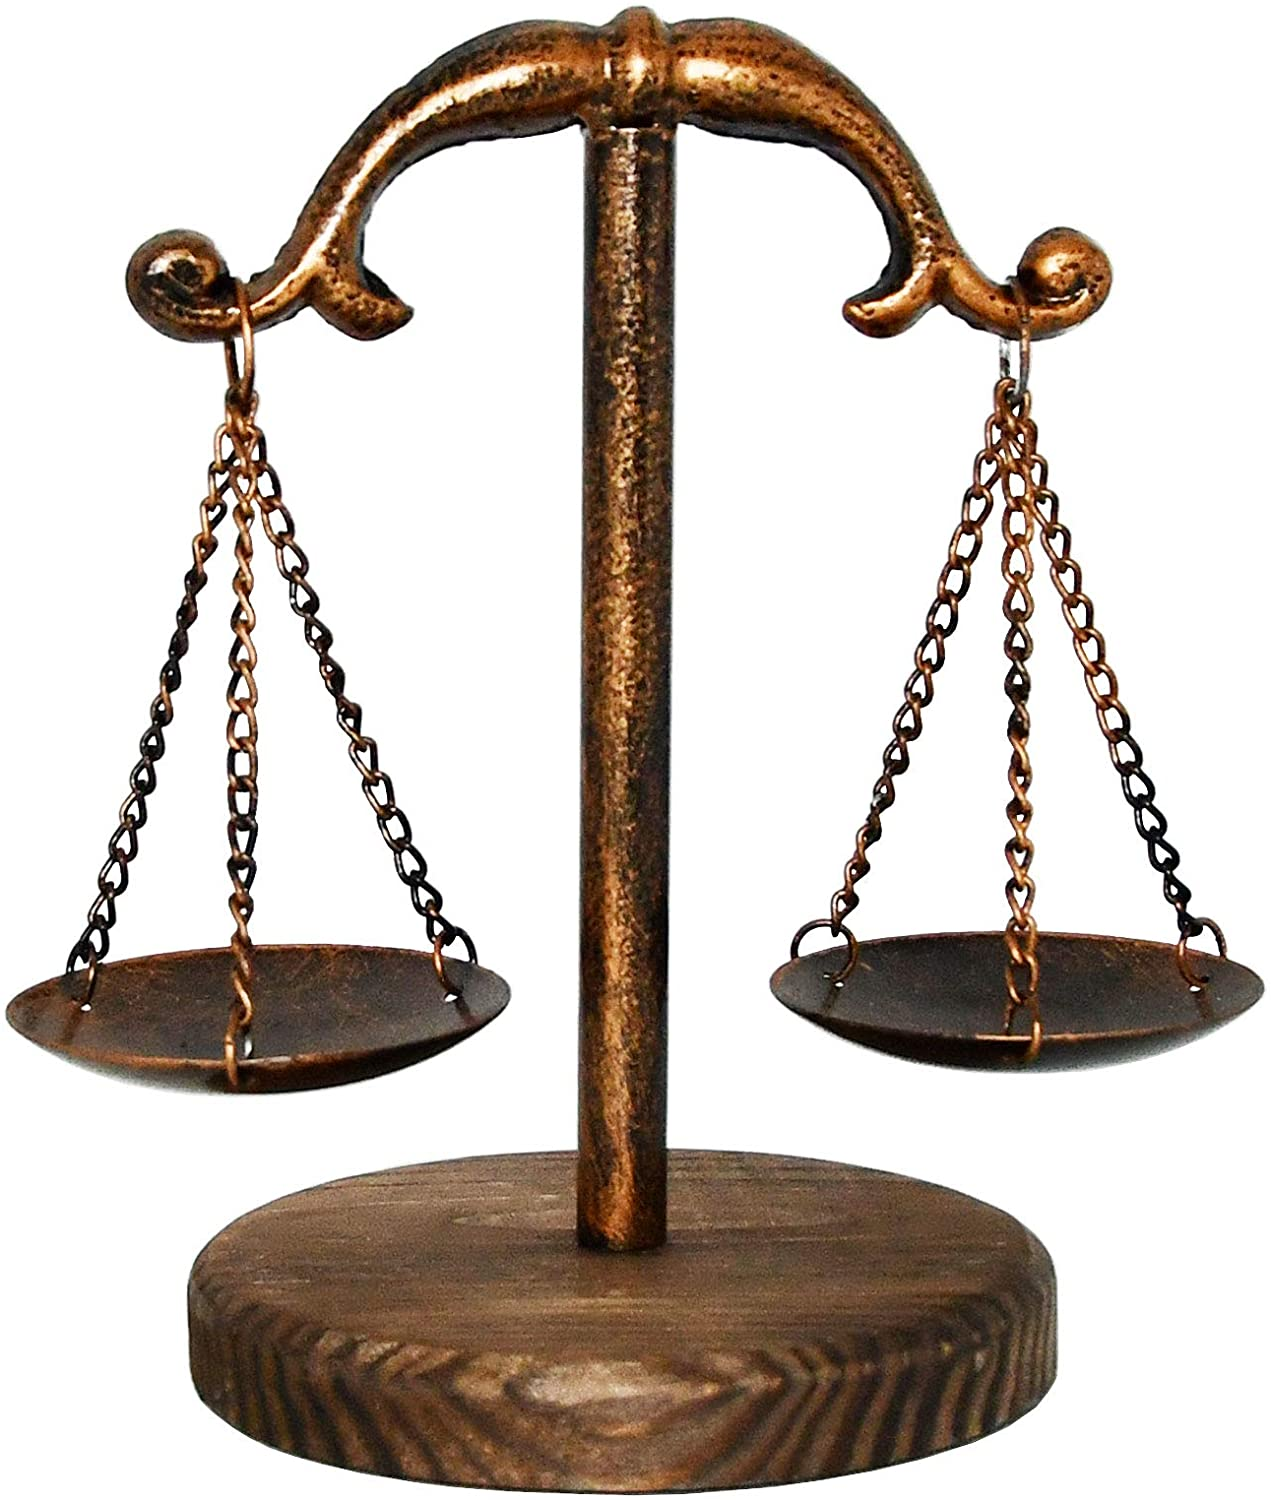 Owlgift Vintage Style Metal Libra Jewelry Display Tray w/Wooden Base Cosmetic Organizer Storage, Lawyer Scale of Justice, Farmhouse Candleholder, Home Décor Antique Weight Balancing Scale – Bronze